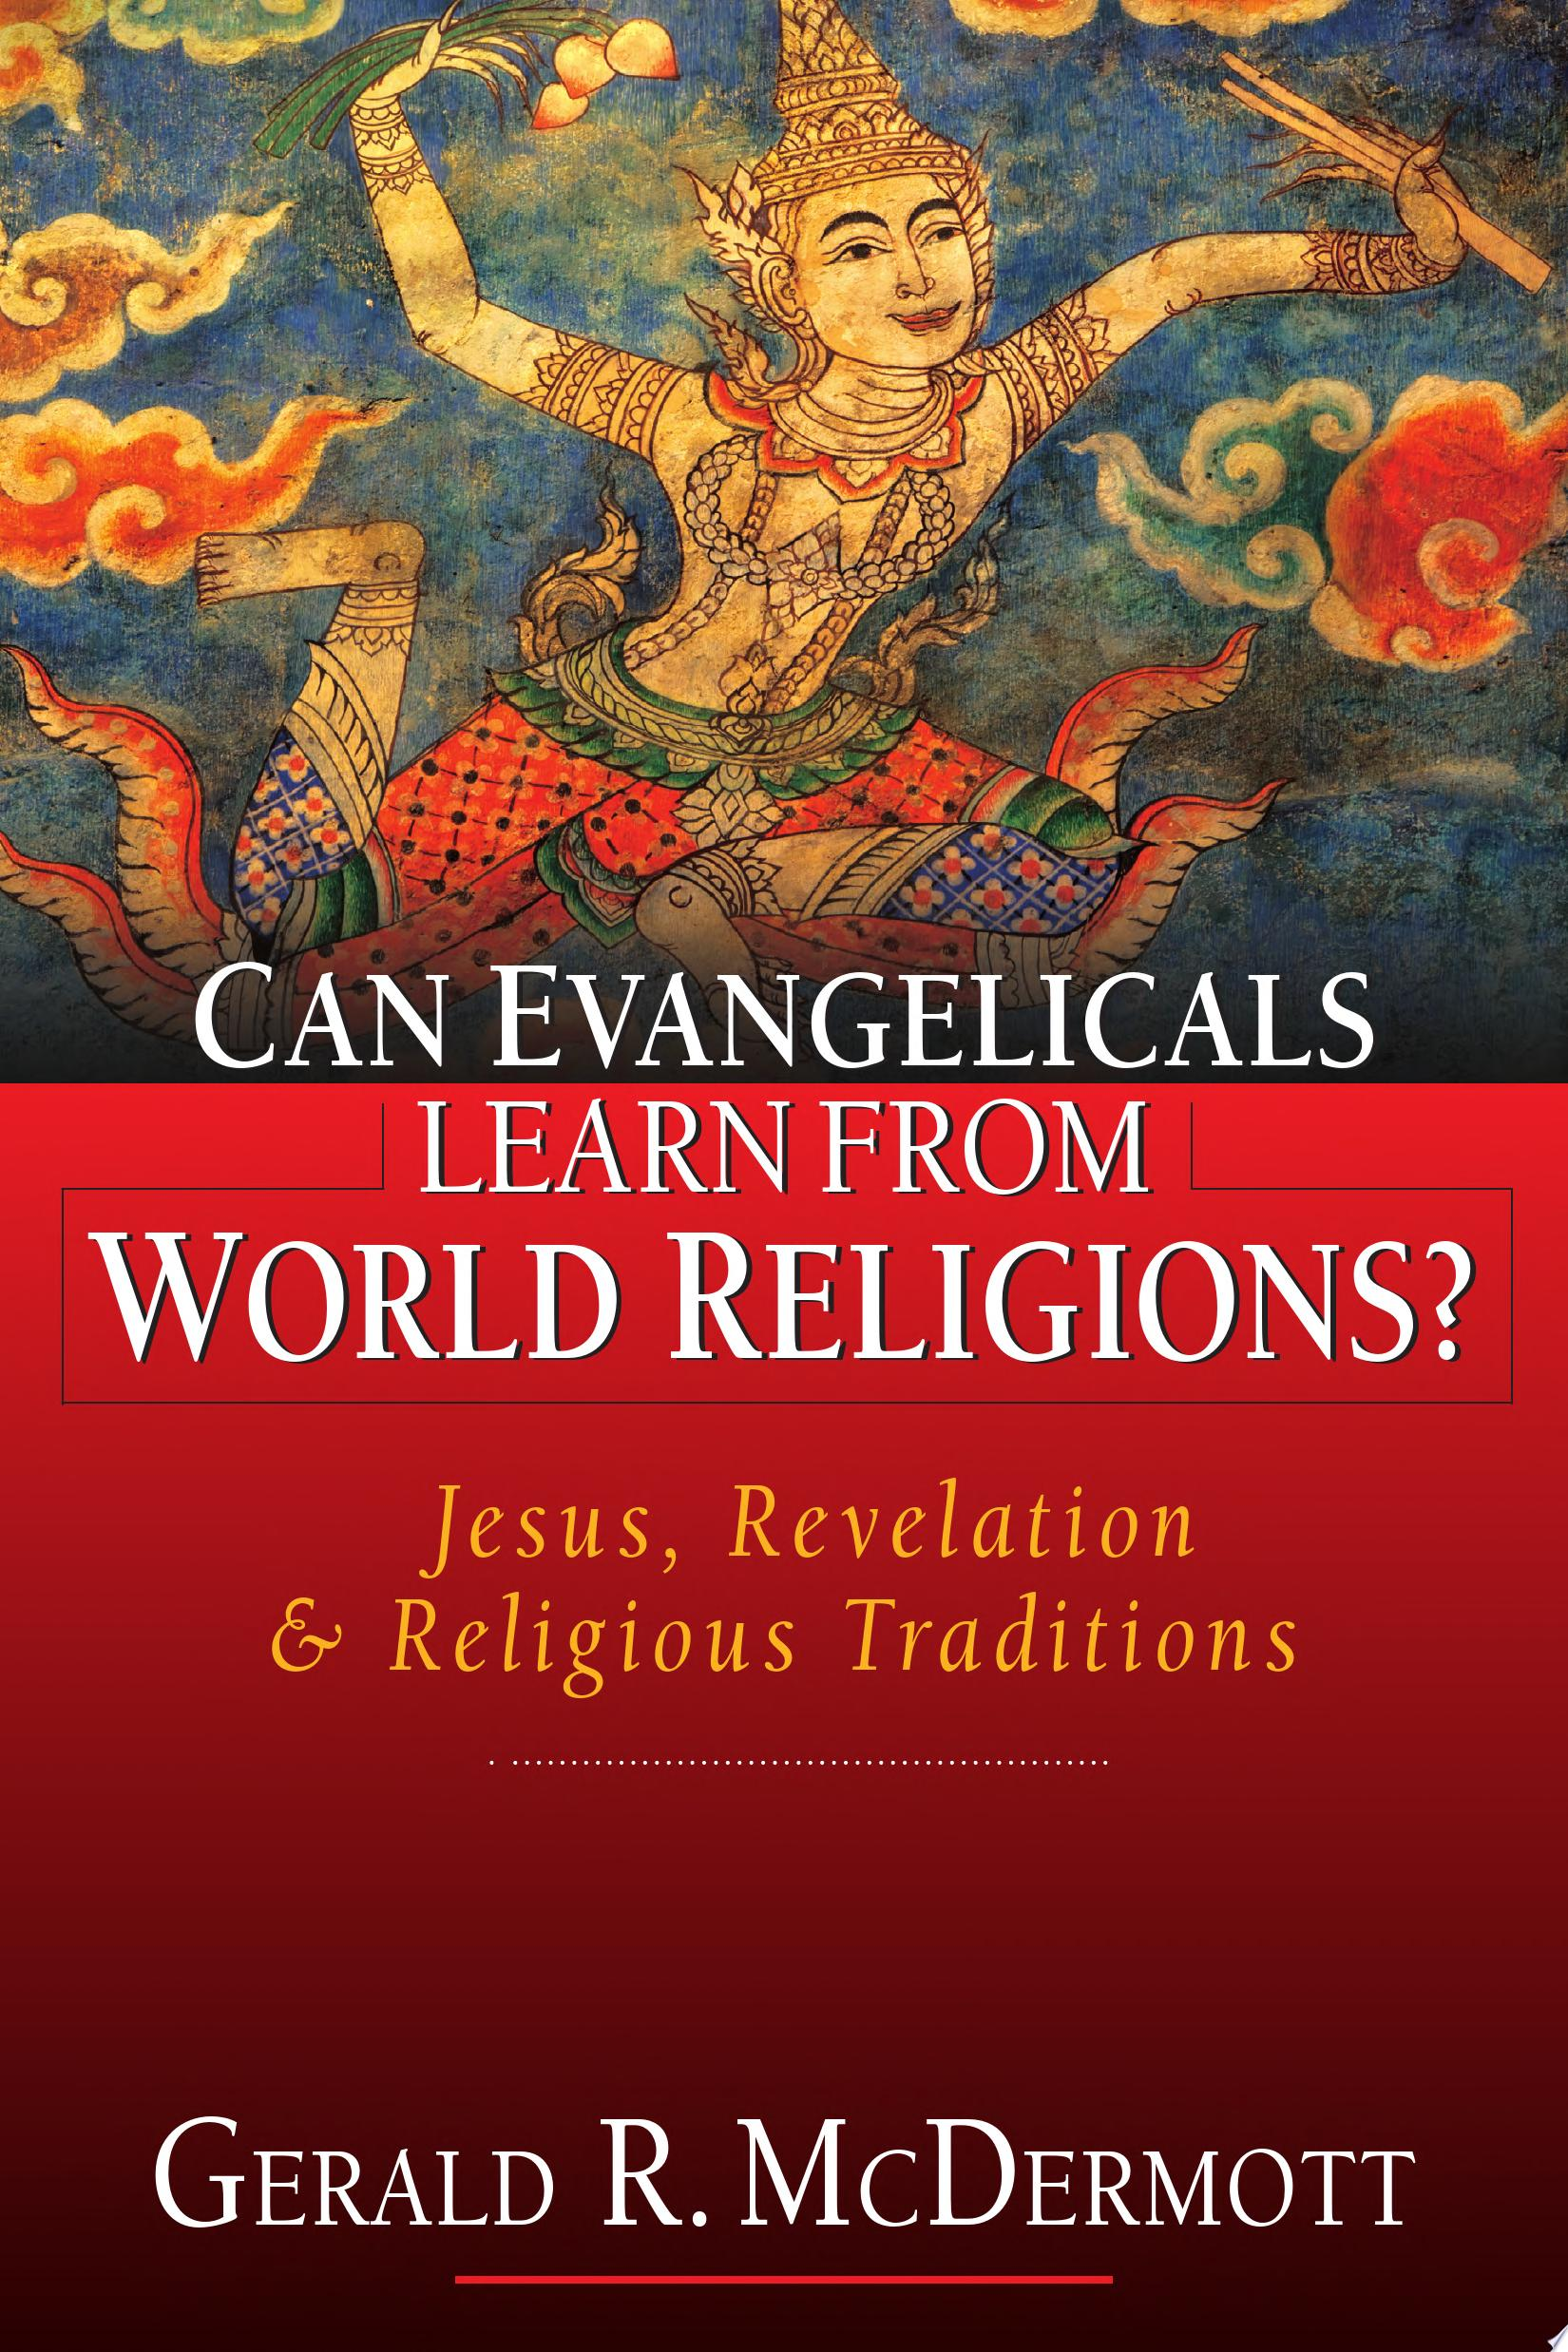 Can Evangelicals Learn from World Religions